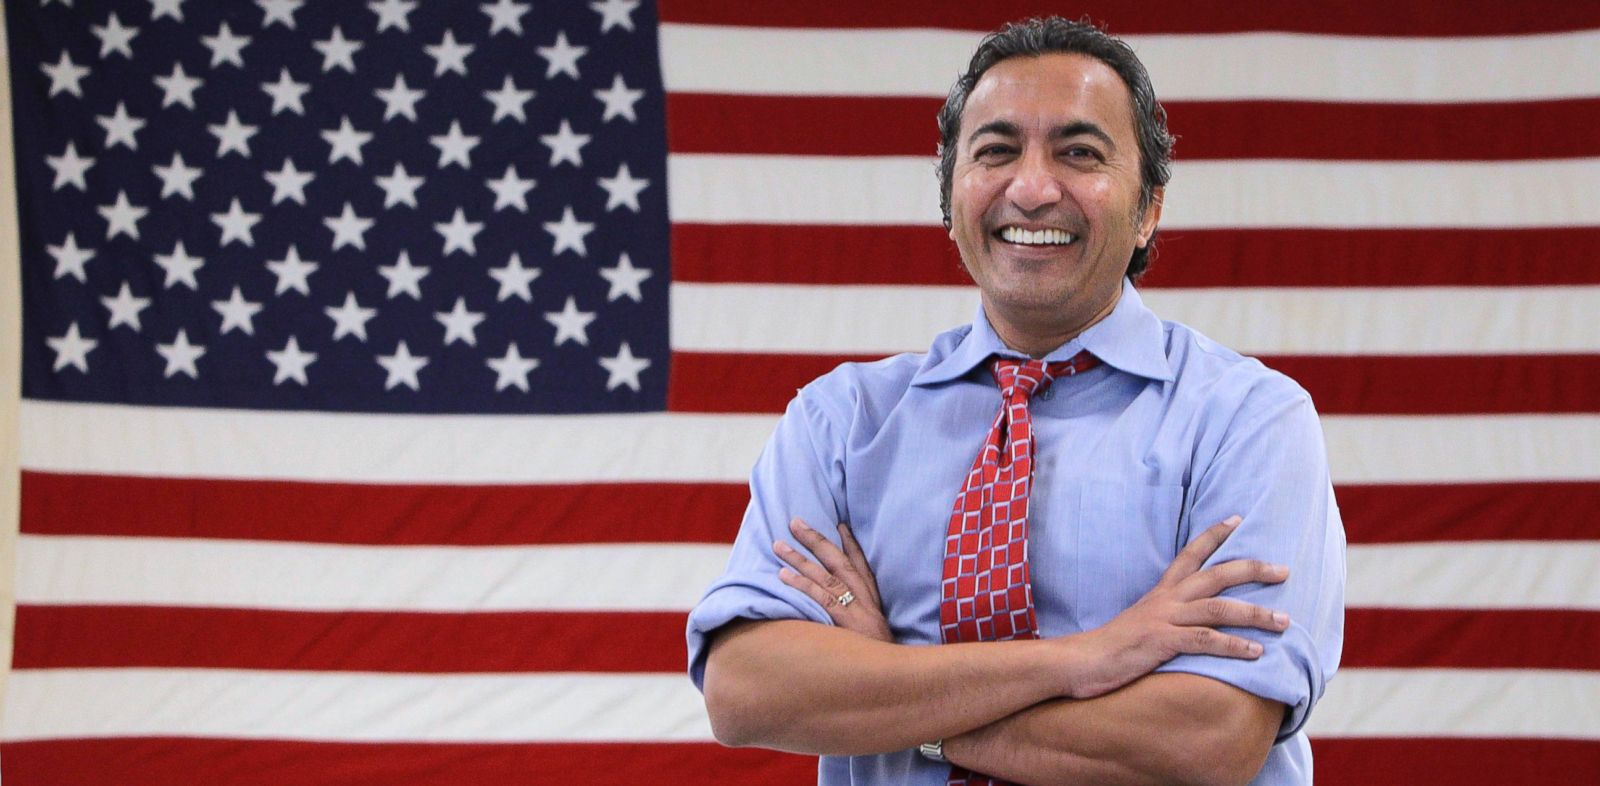 PHOTO: Rep. Ami Bera, poses for a photo at his campaign office in Elk Grove, Calif., Oct. 26, 2012.